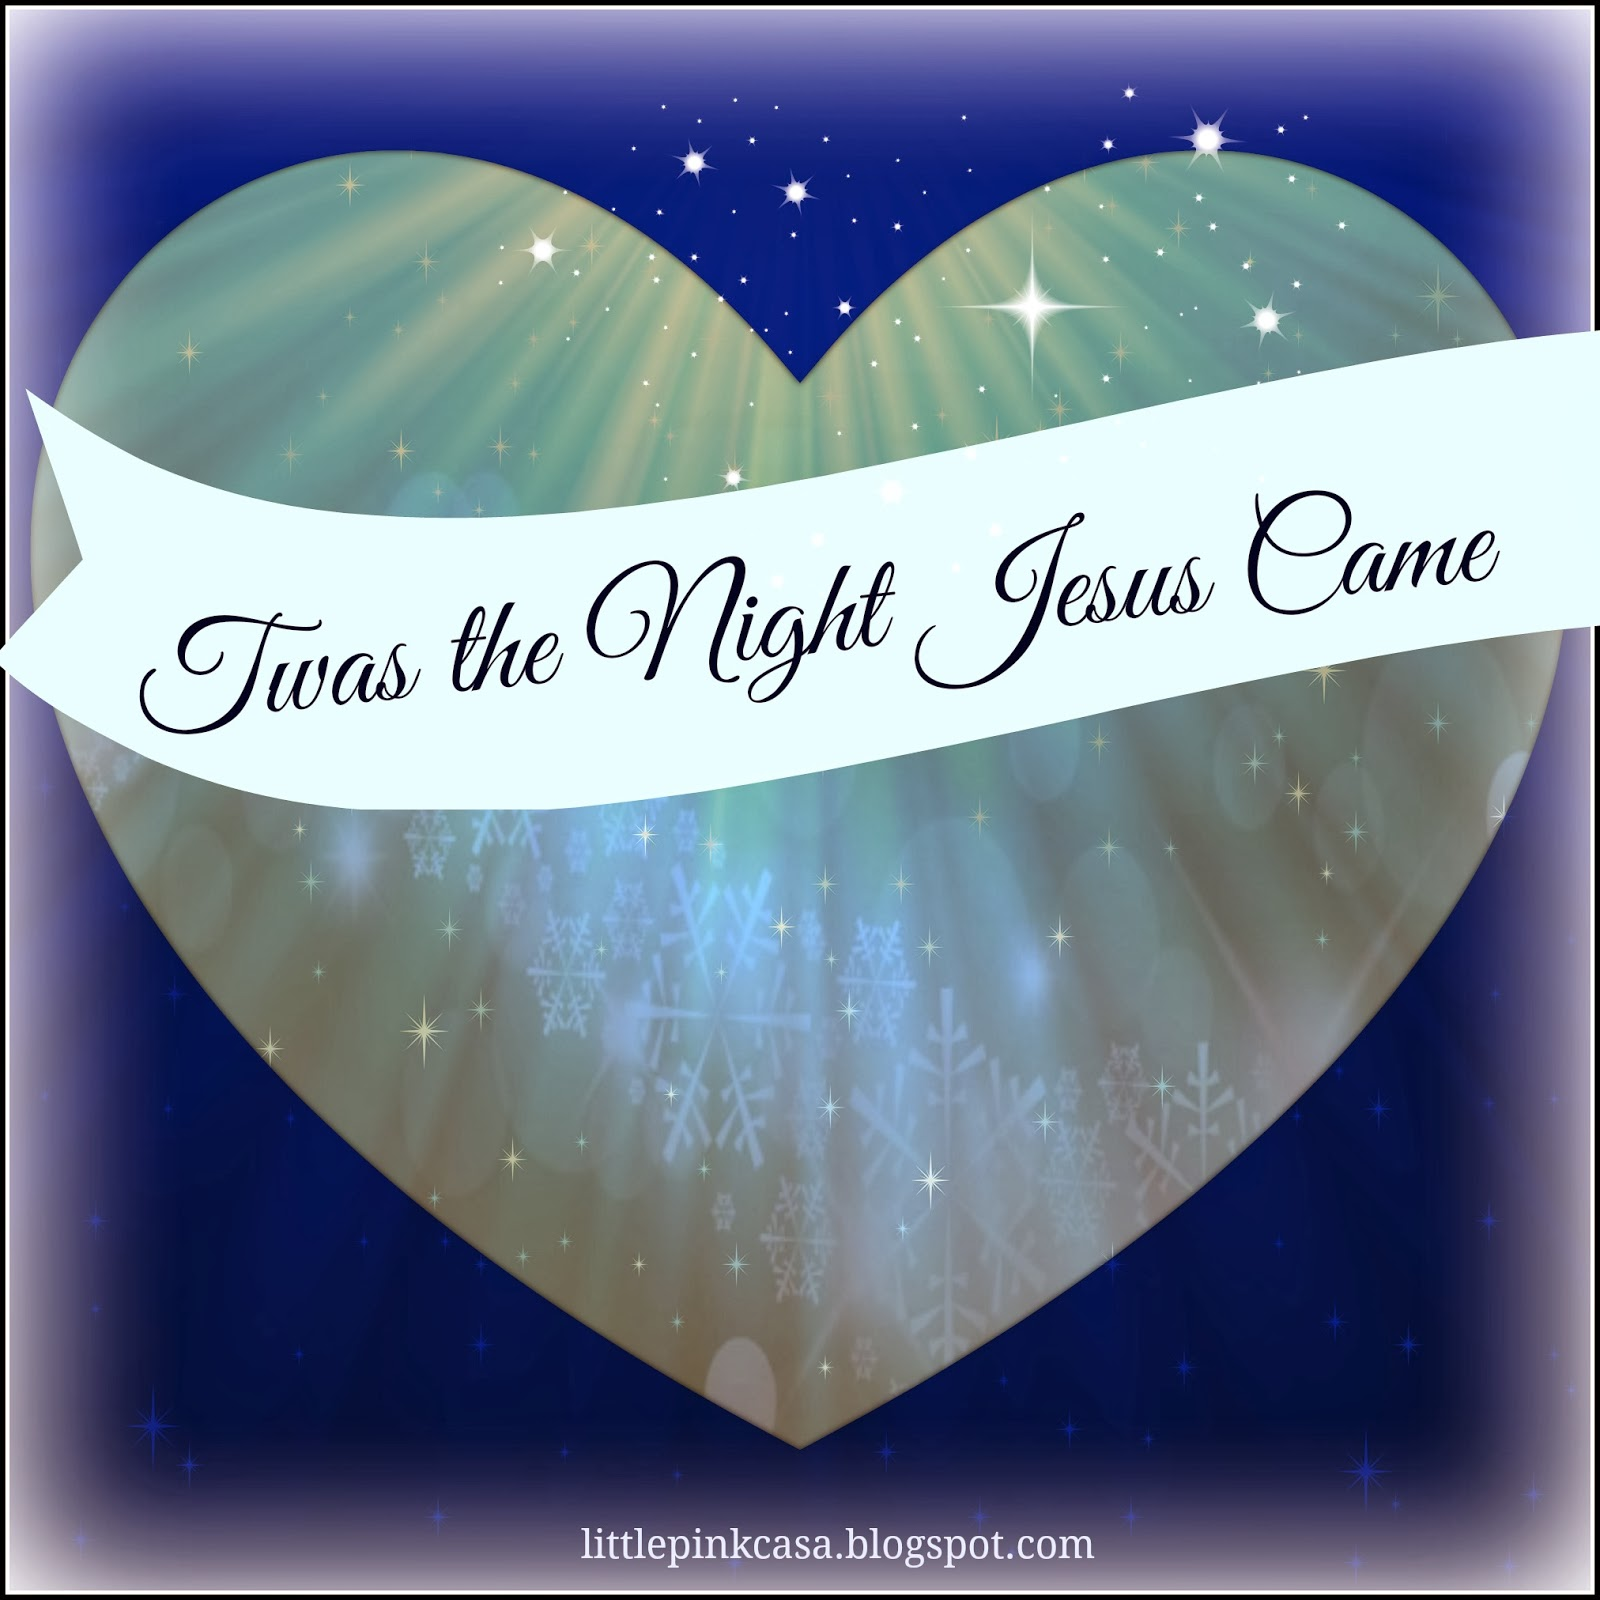 picture regarding Twas the Night Before Jesus Came Printable known as Twas the Night time Jesus Arrived Poem Small crimson casa